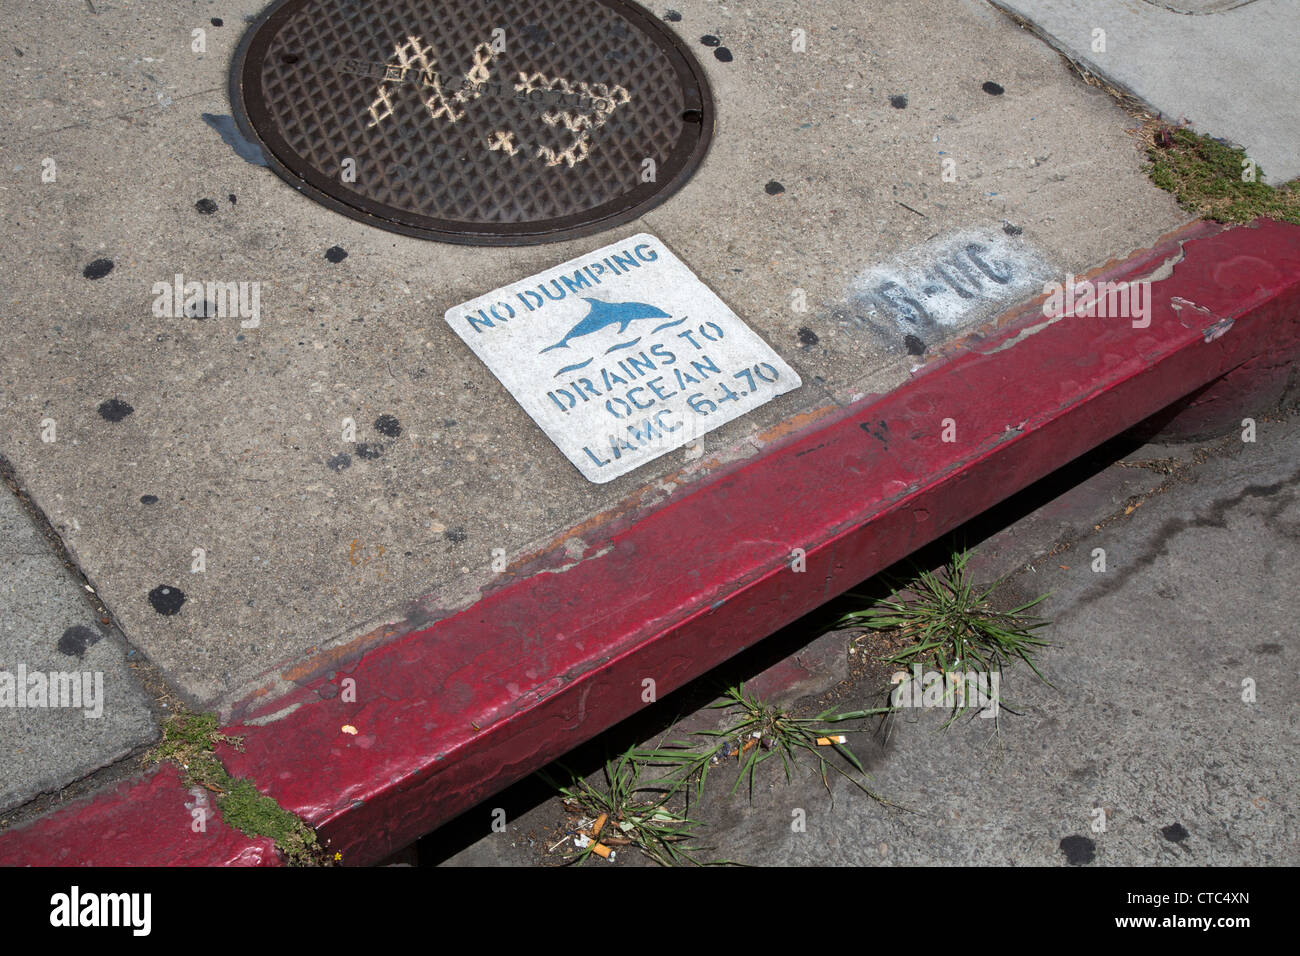 Los Angeles, California - A sign warns against illegal dumping in a storm water drain that leads to the Pacific - Stock Image